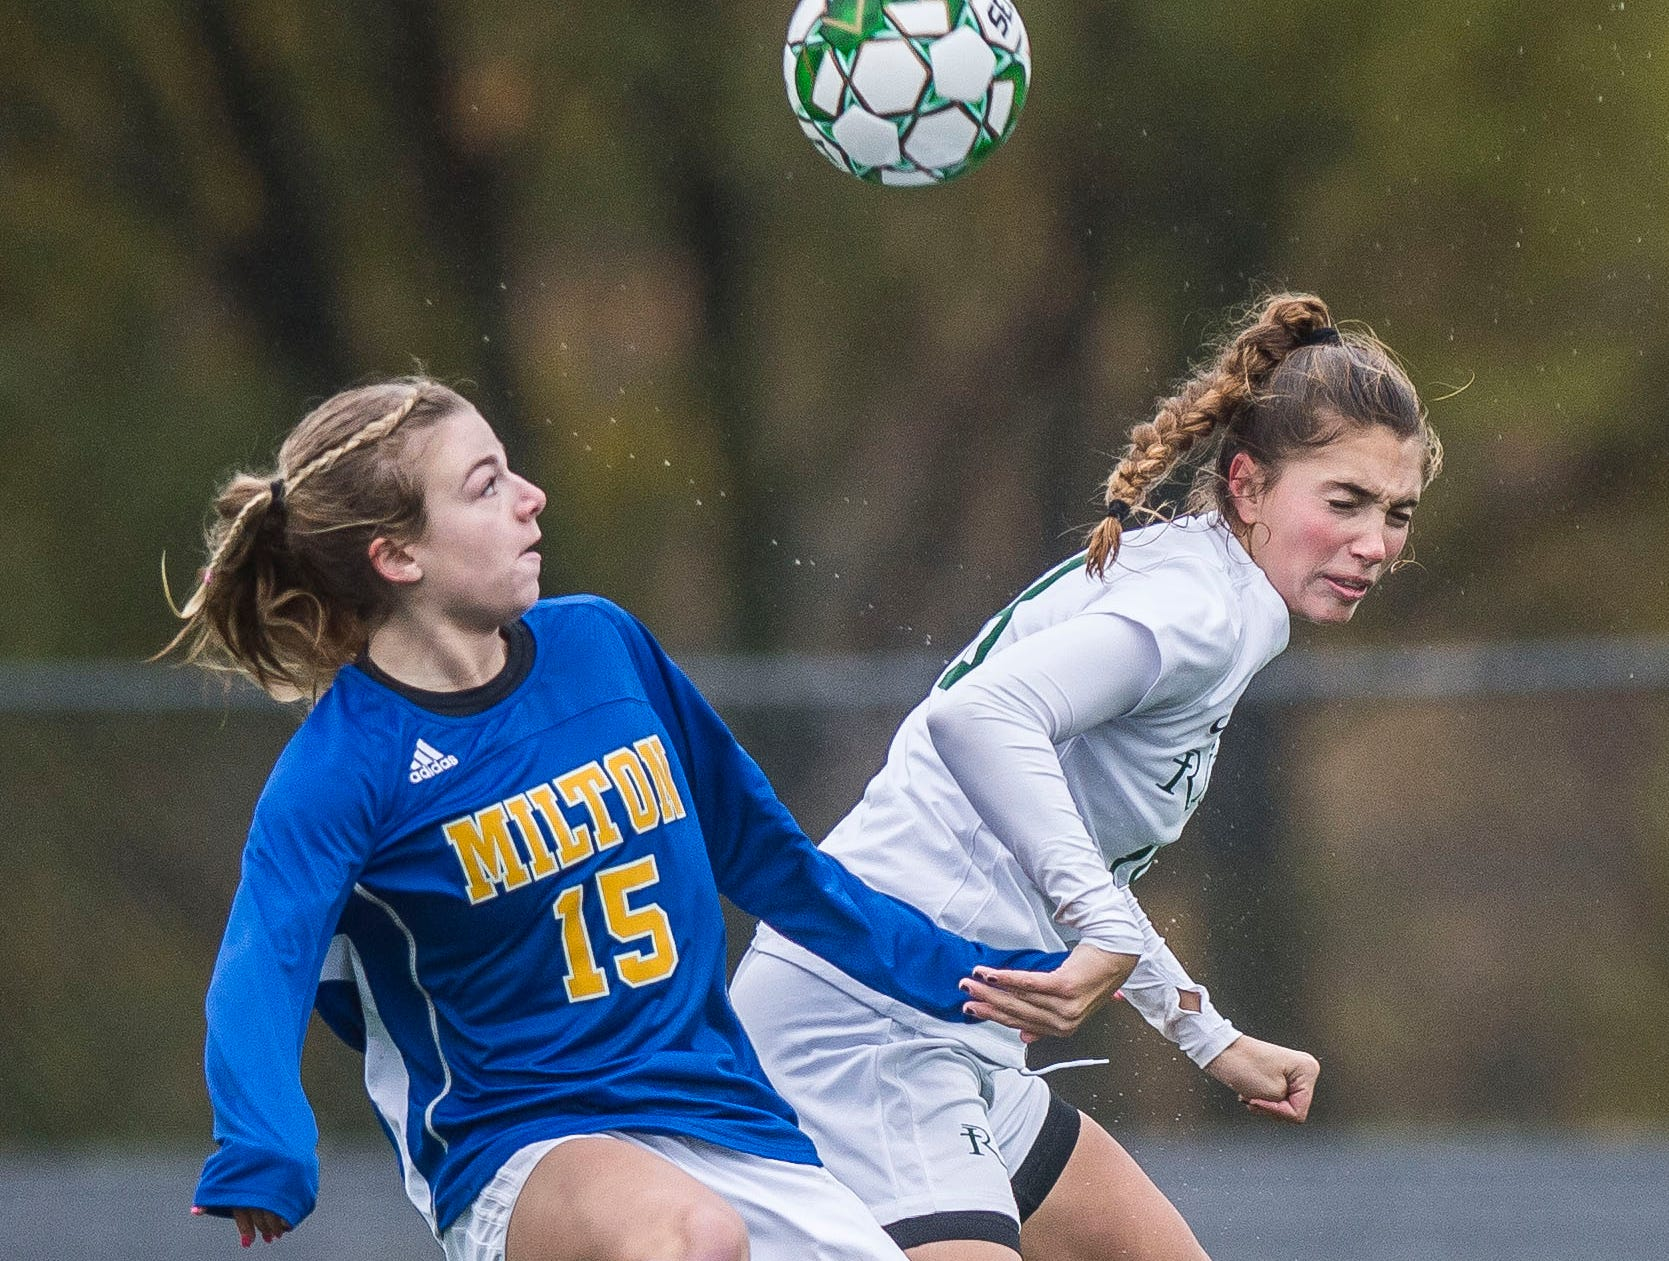 Milton #15 Emma Wennar collides with Rice #18 Abby Mckeown during the Div. 2 Vermont State girl's high school soccer championship on Saturday, Nov. 3, 2018, at South Burlington High School. Milton won the championship in sudden-death overtime, 2-1.